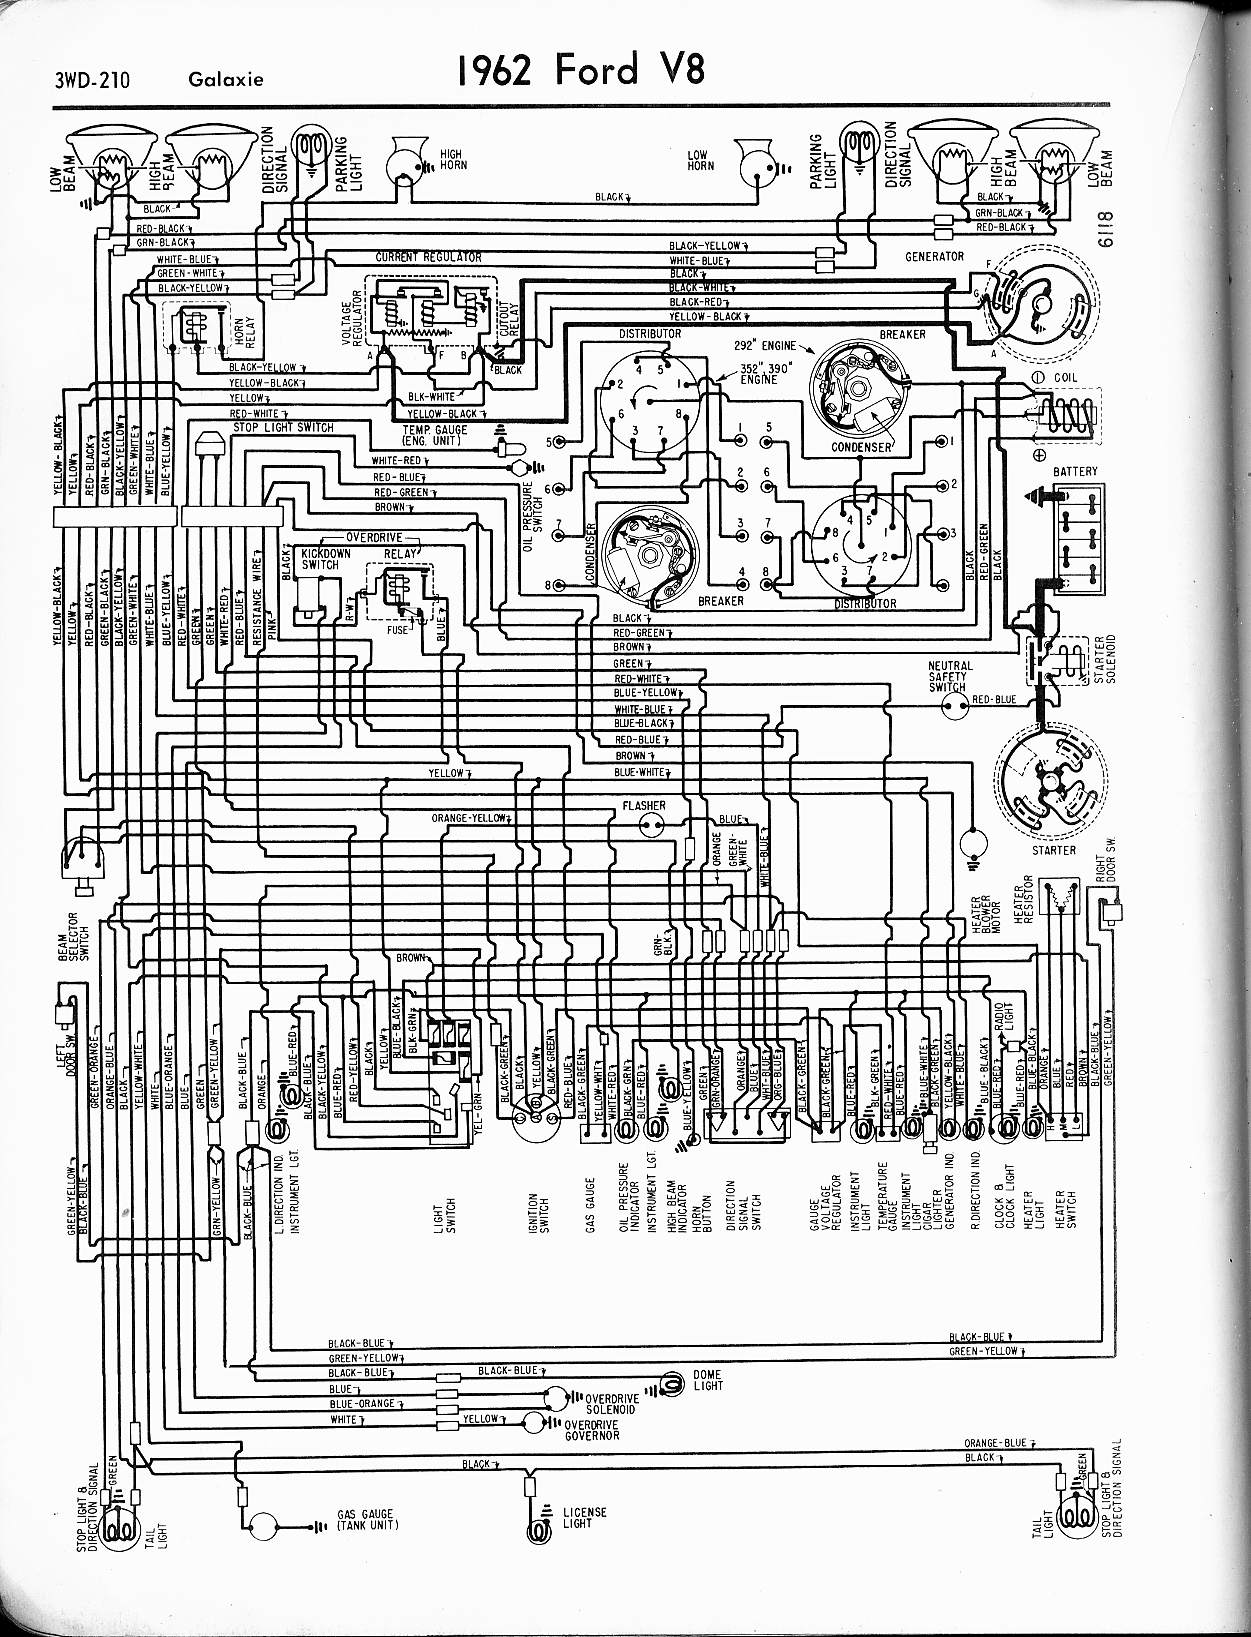 Mwire on 67 Mustang Ignition Wiring Diagram